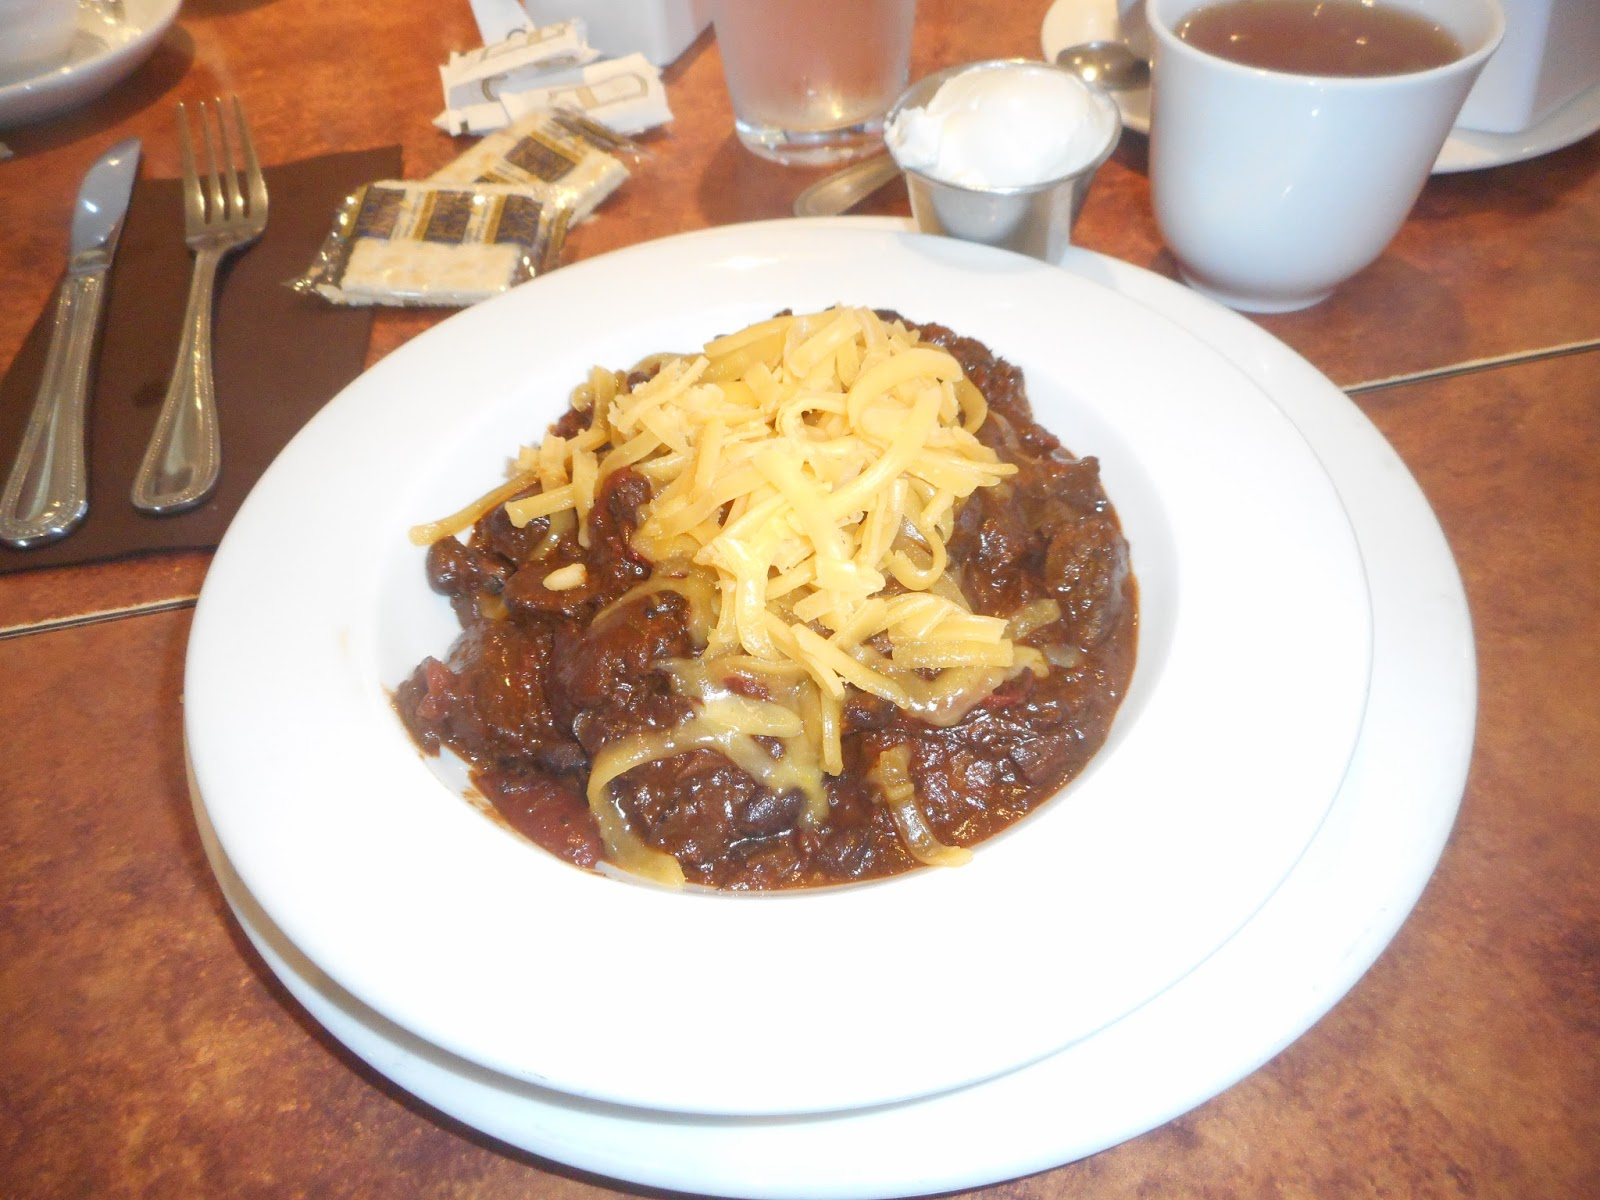 Prime rib chili with black beans, chorizo (sausage), dark chocolate ...